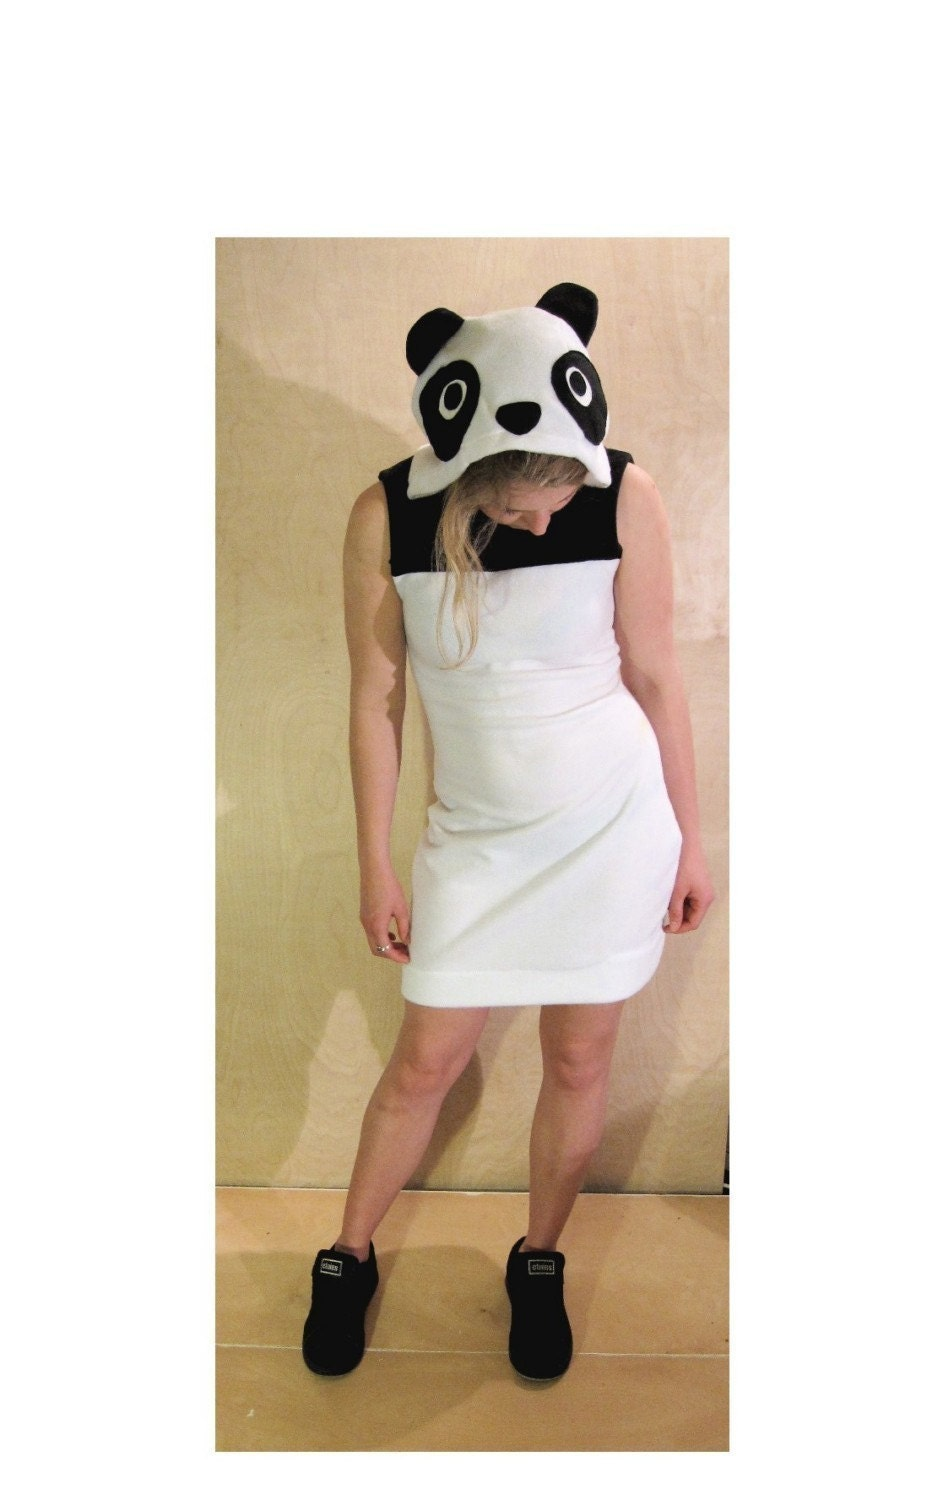 Cutie Pie - Panda Minidress